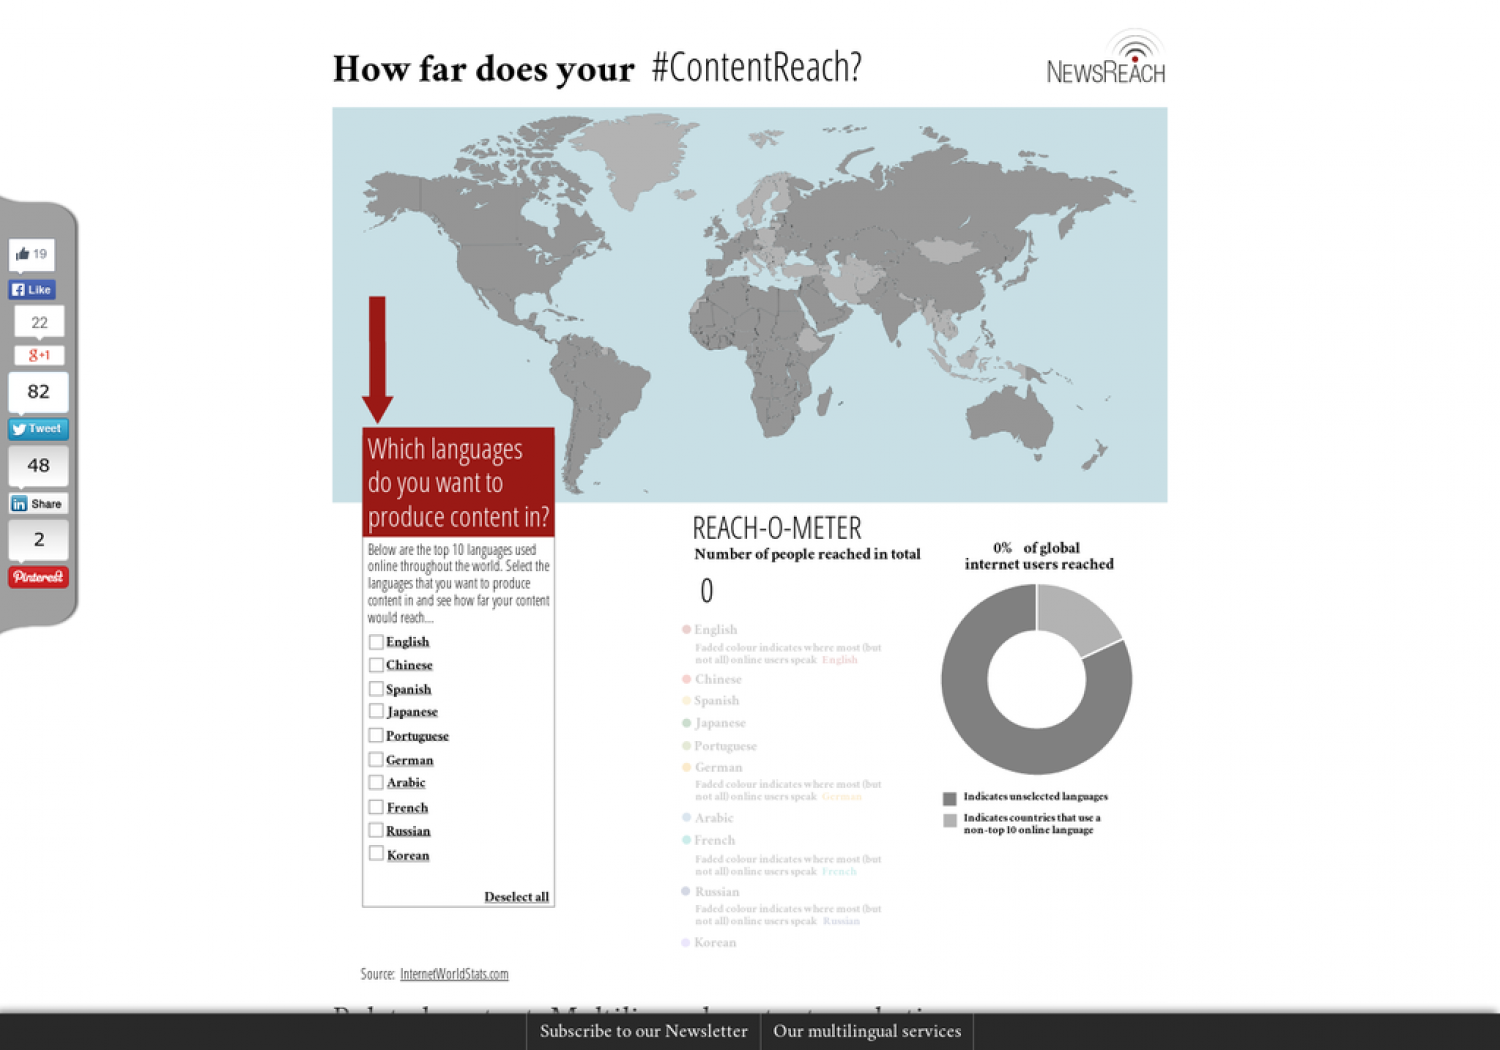 How far does your #ContentReach? Infographic